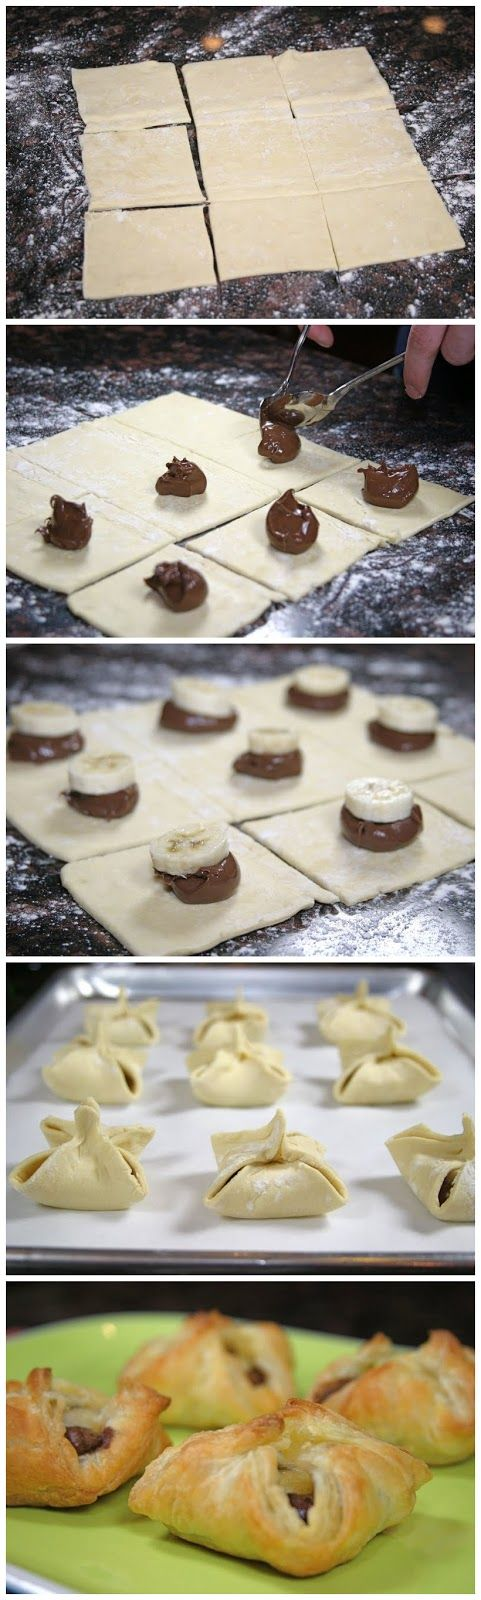 Nutella and Banana Pastry Purses...can use  Pillsbury gluten free pastry dough! Woot woooot!